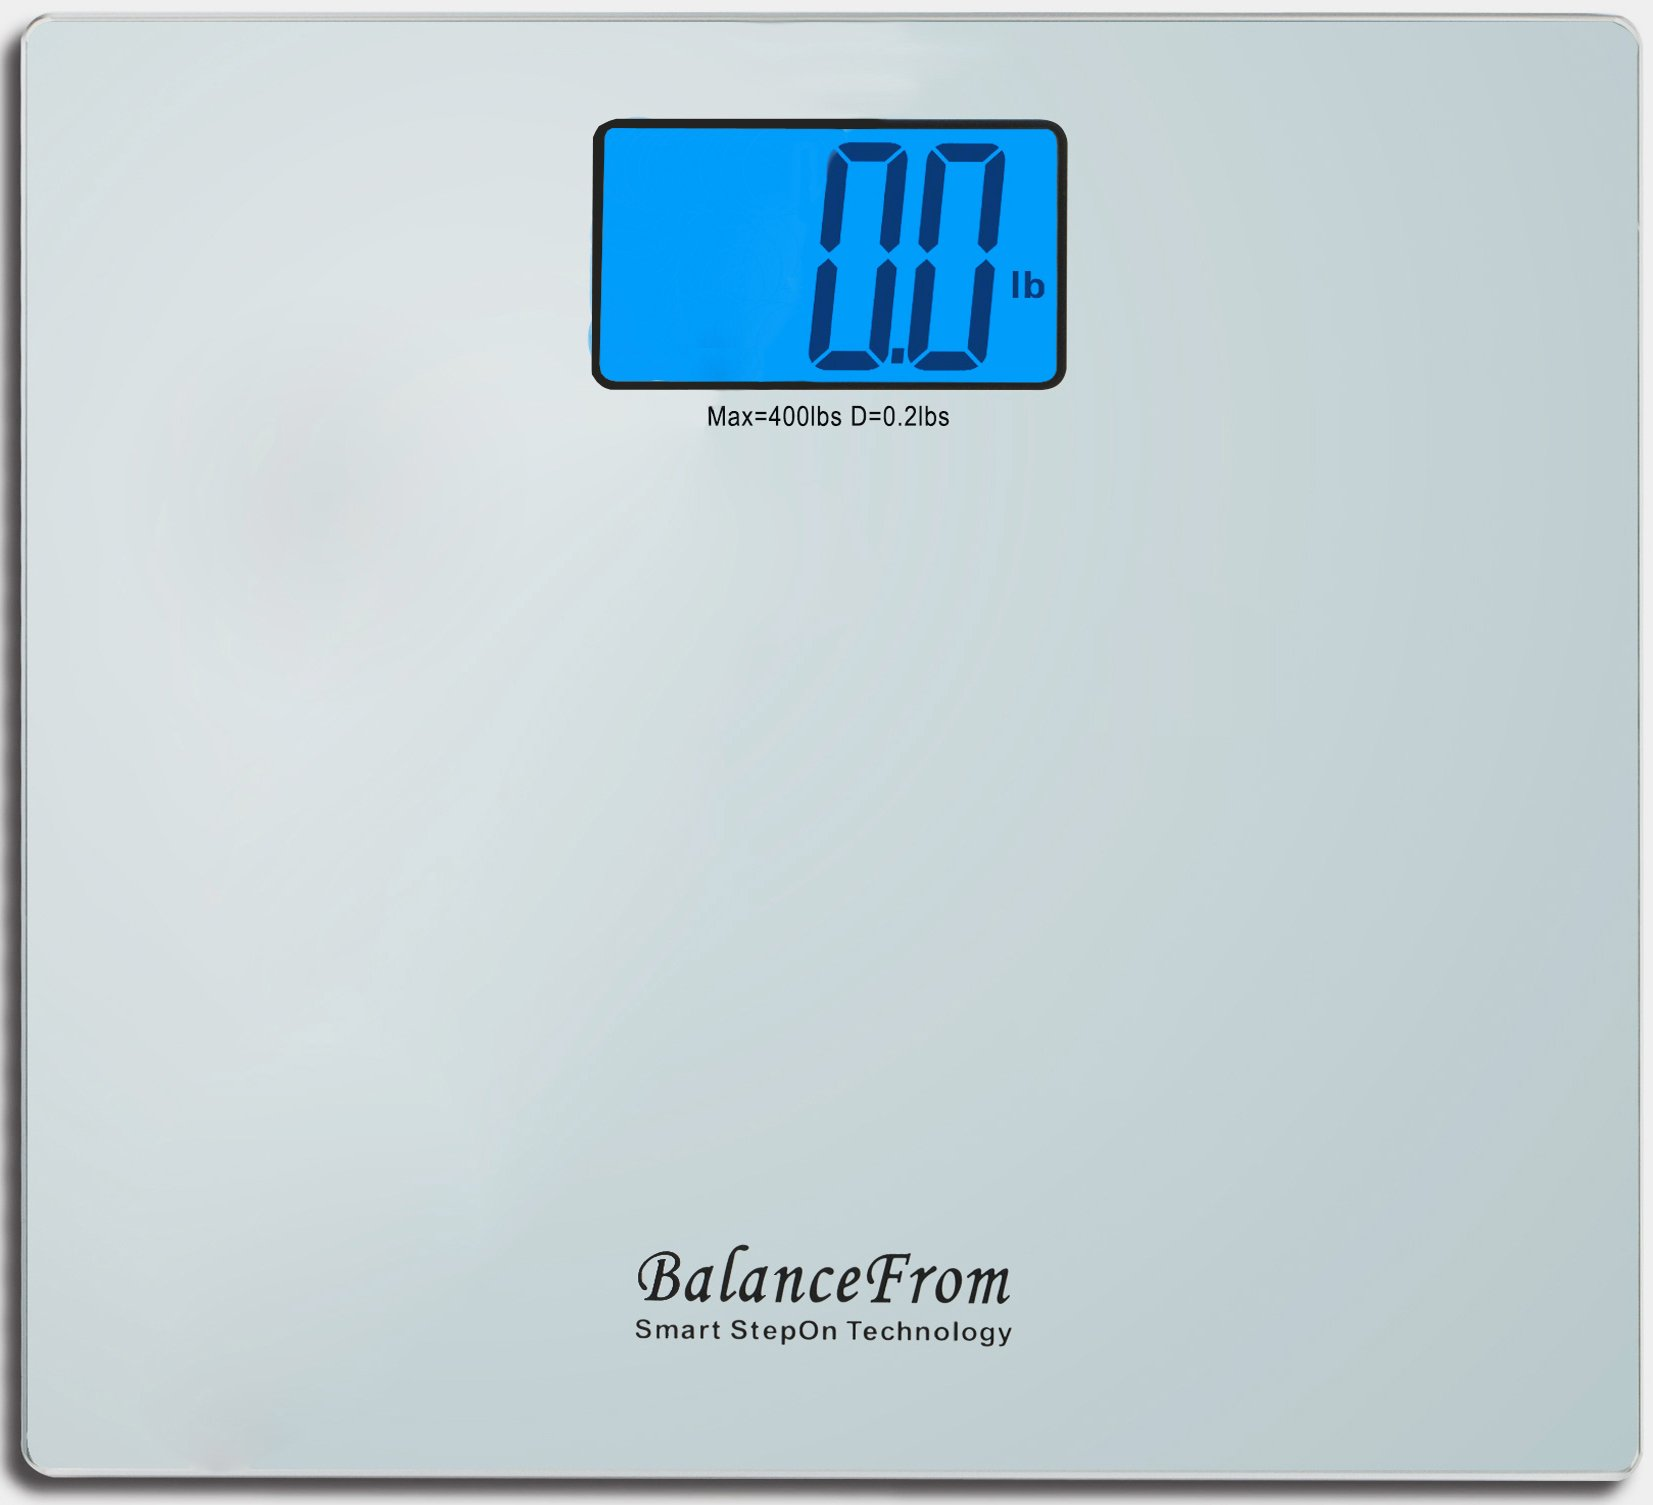 BalanceFrom High Accuracy Digital Bathroom Scale with Large Backlight Display and''Step-On'' Technology [Newest Version] (Silver)